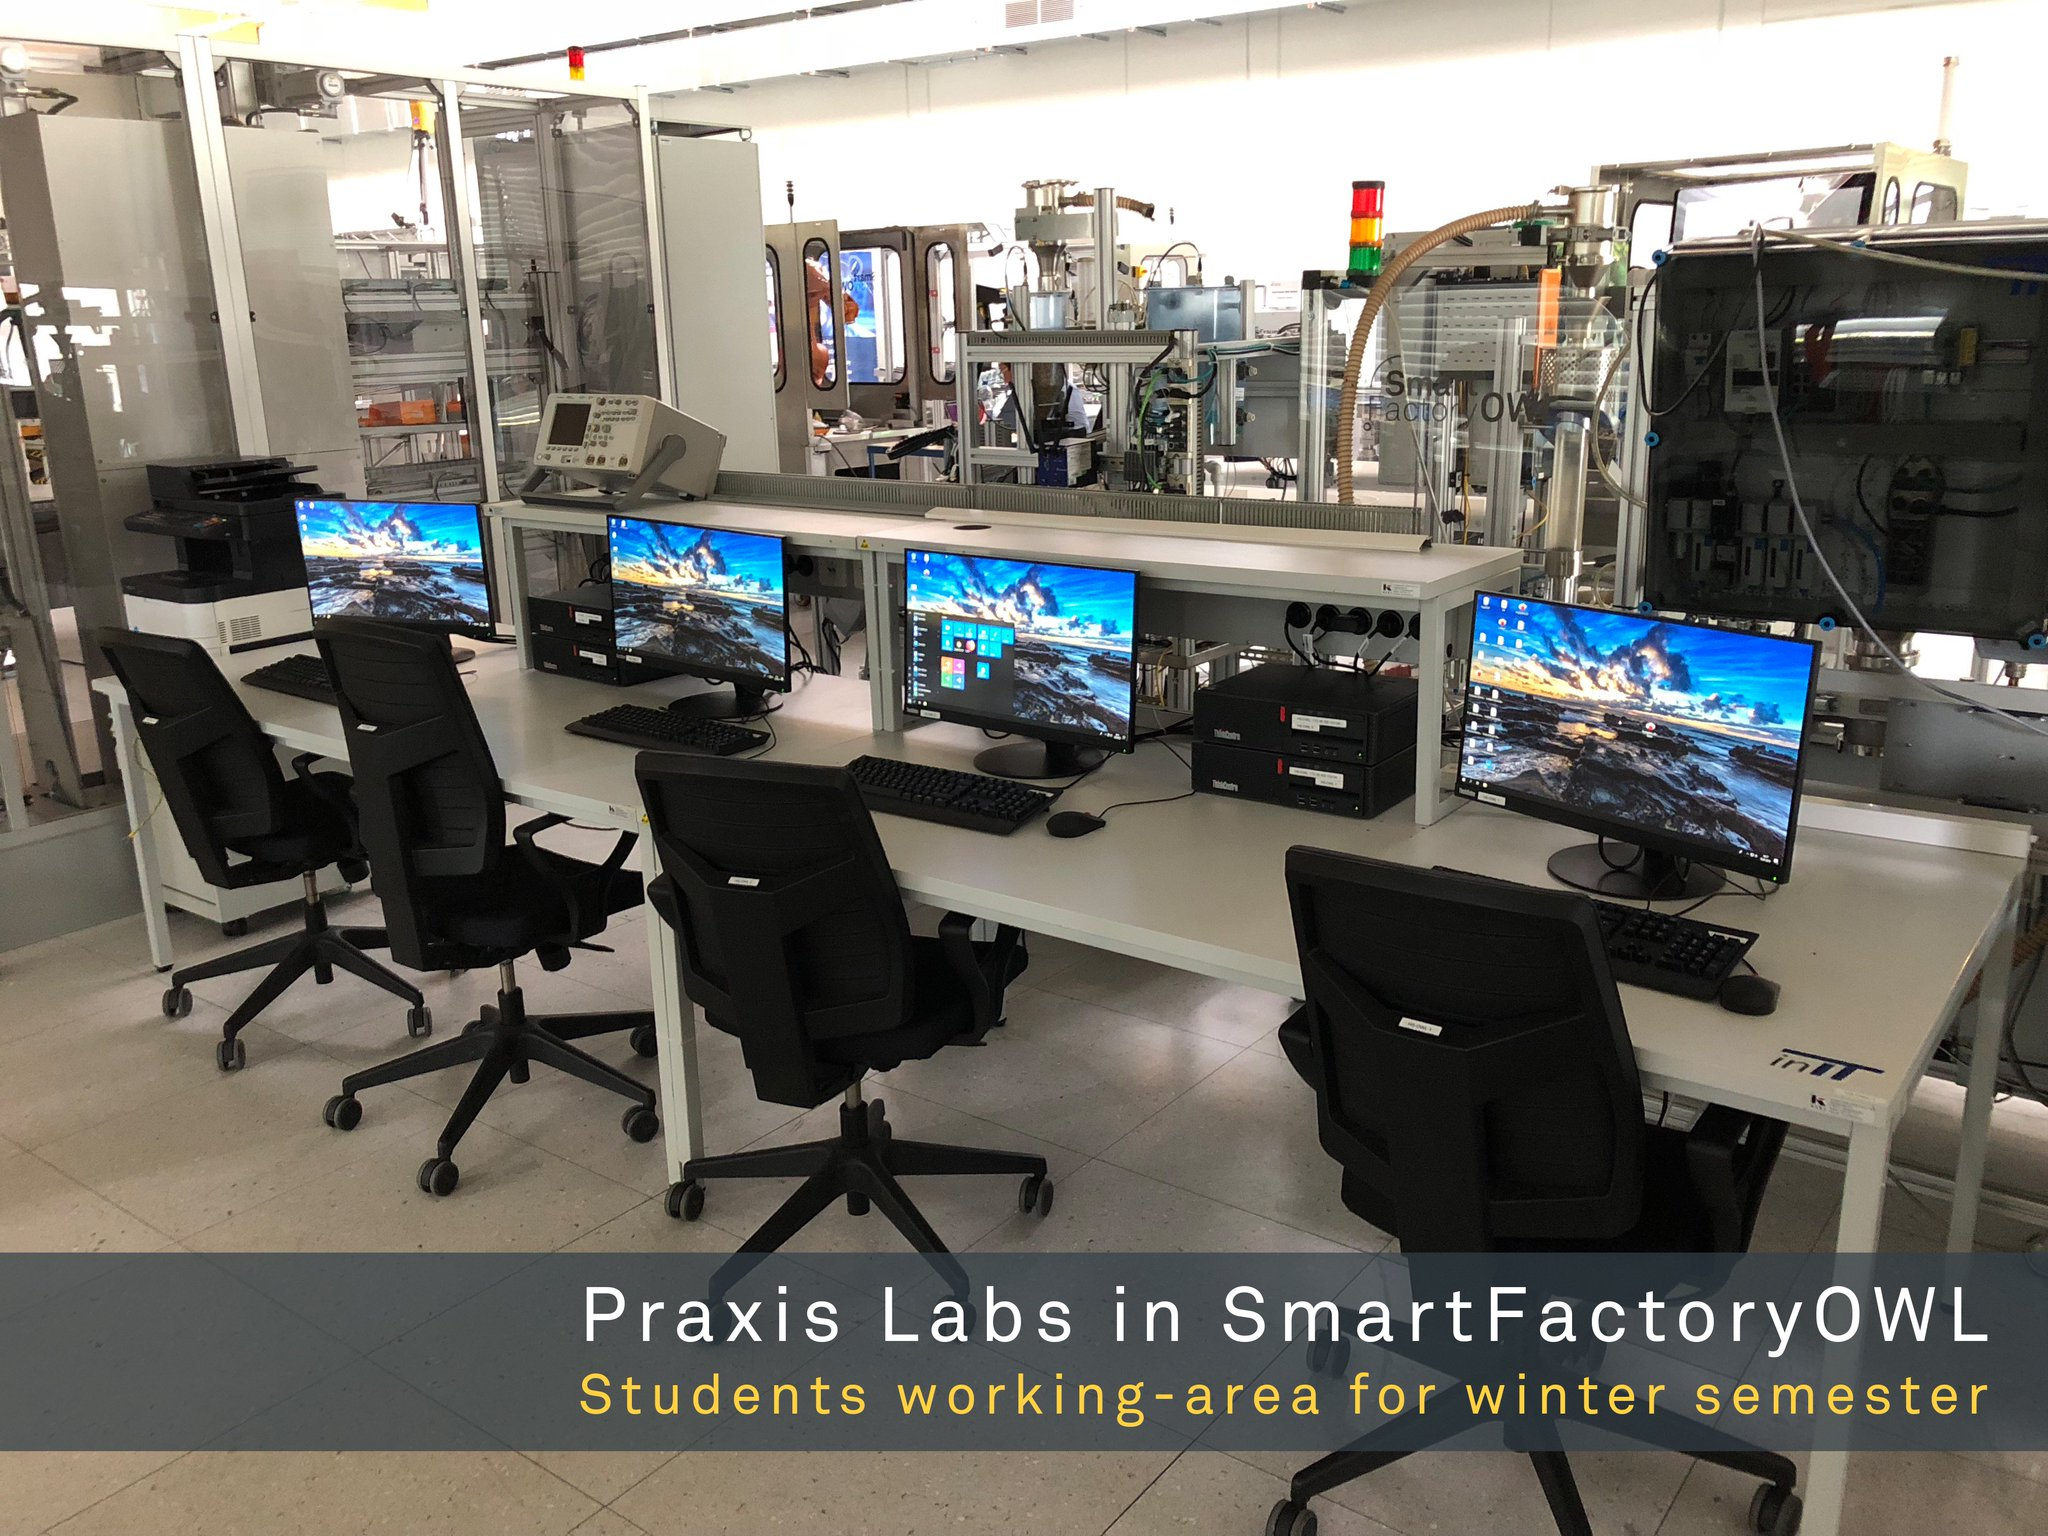 Smartfactoryowl On Twitter Looks Like Control Center Of Smartfactoryowl But It Is The Student Working Area For The Next Winter Semester Preparations Running At Full Speed Hochschuleowl Https T Co Codzfqhwep